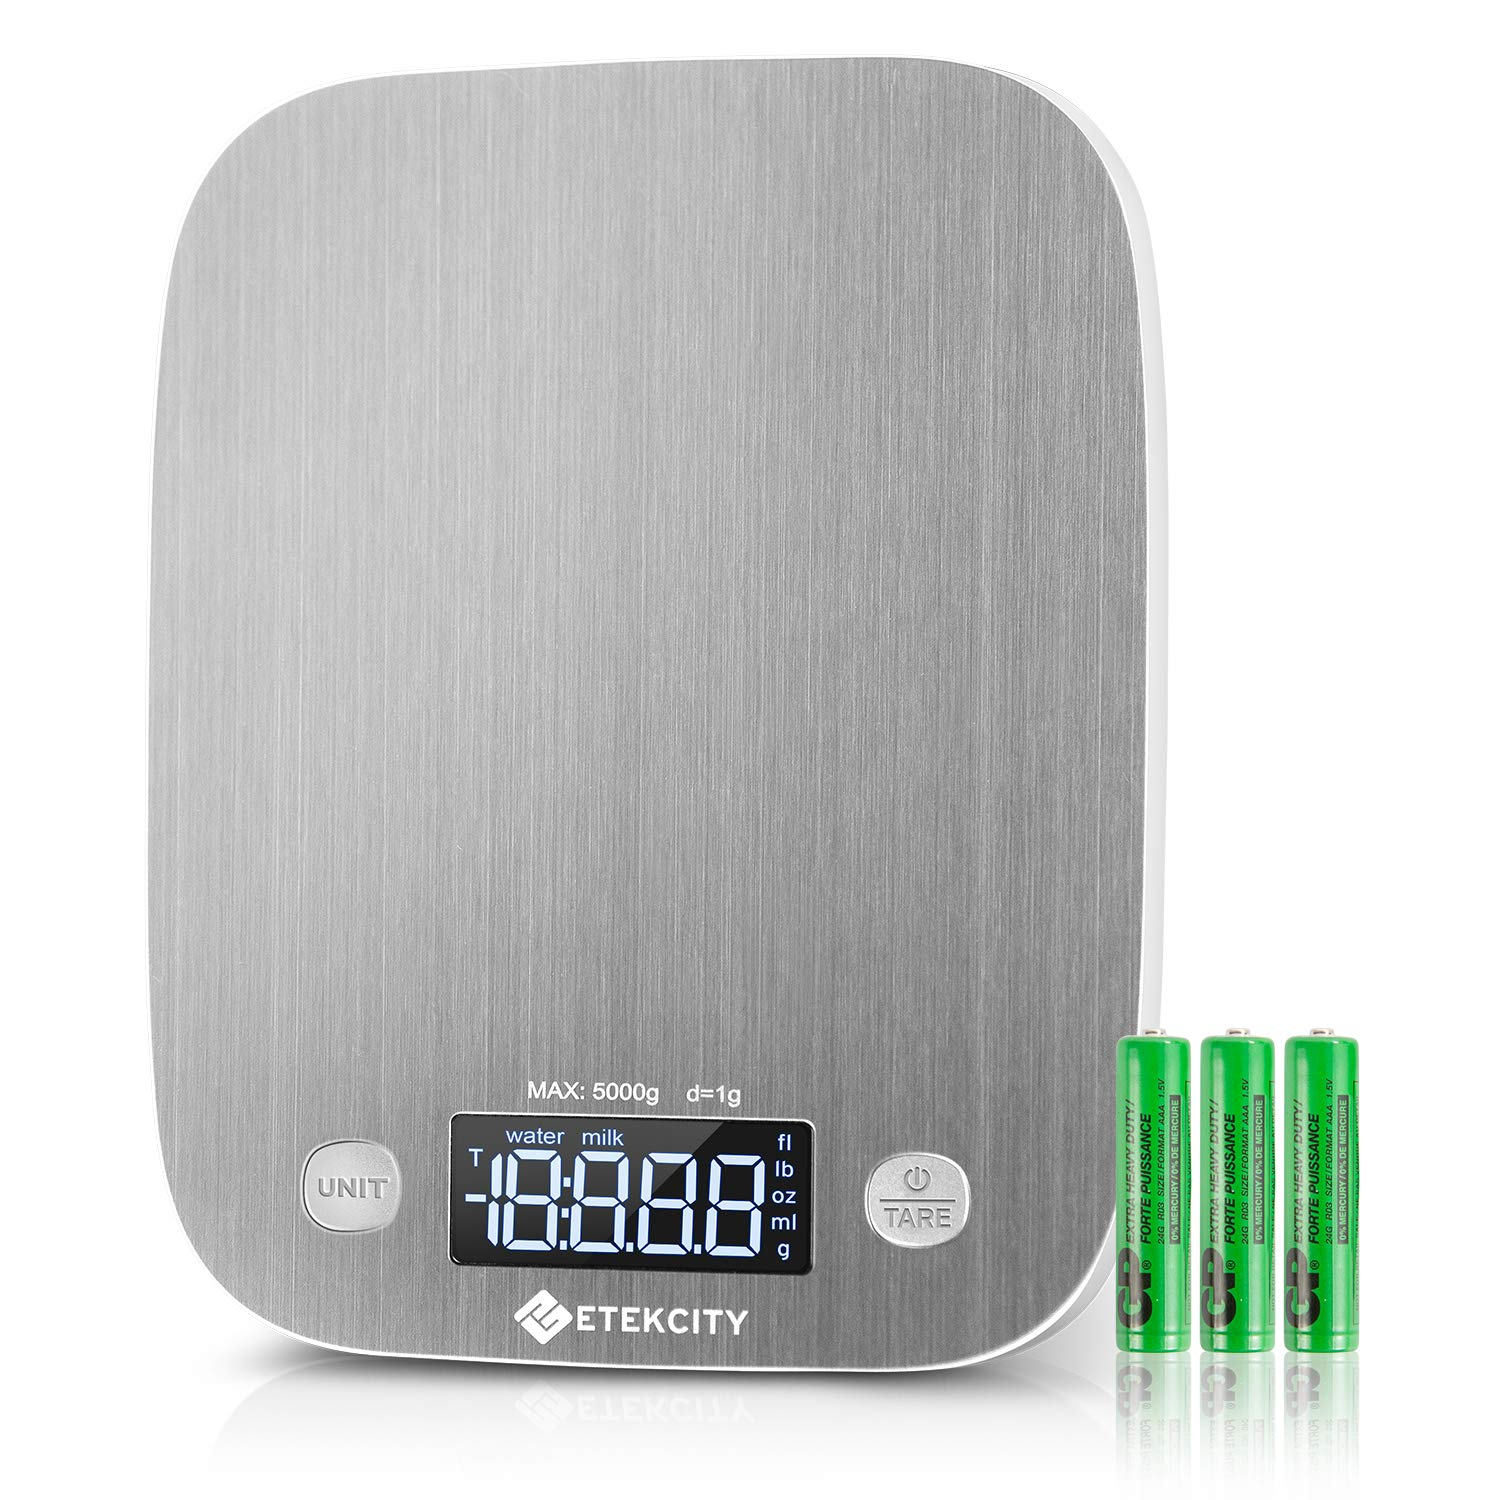 Etekcity Kitchen Food Scale Digital Weight Grams and Oz, LED Backlit Display (AAA Battery), Stainless Steel, Silver